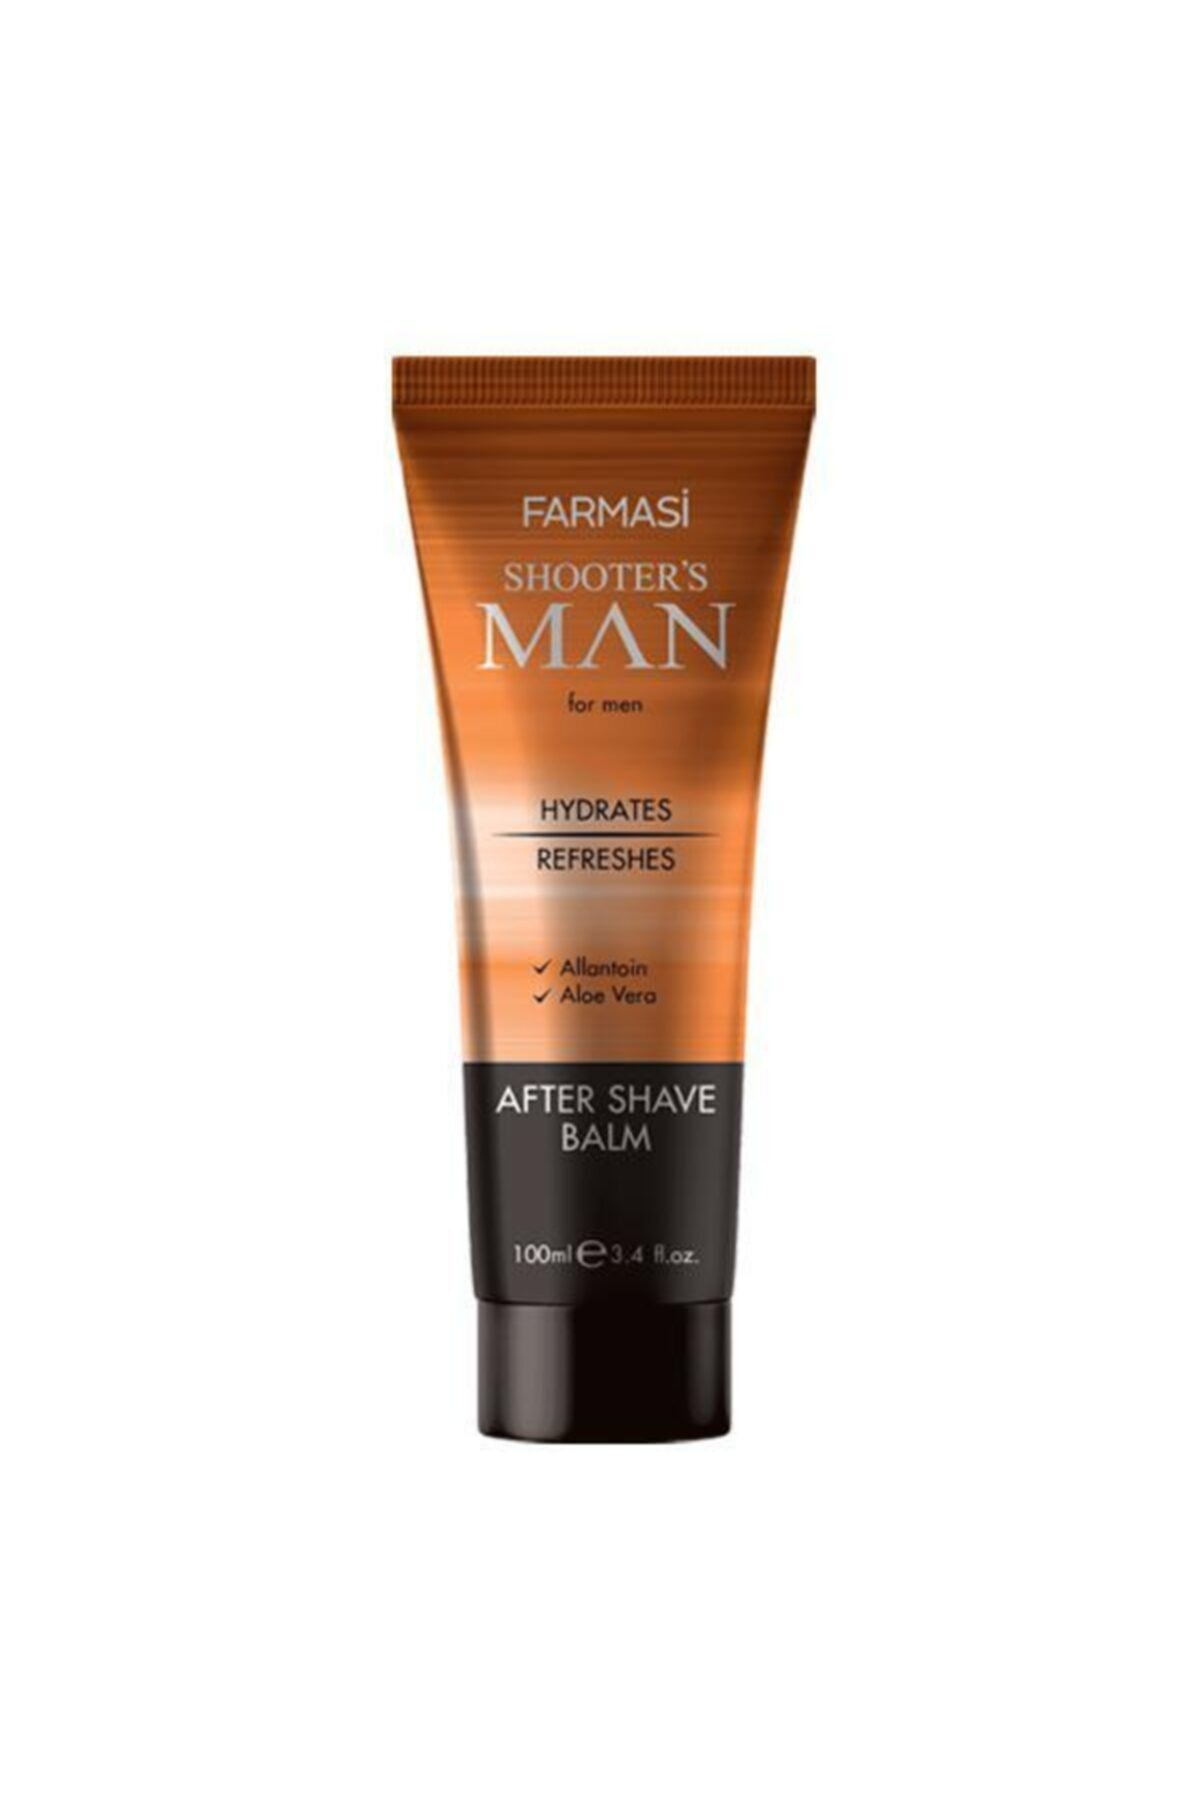 Farmasi 1111071 Shooters Man After Shave Balm Balsam 100ml 1